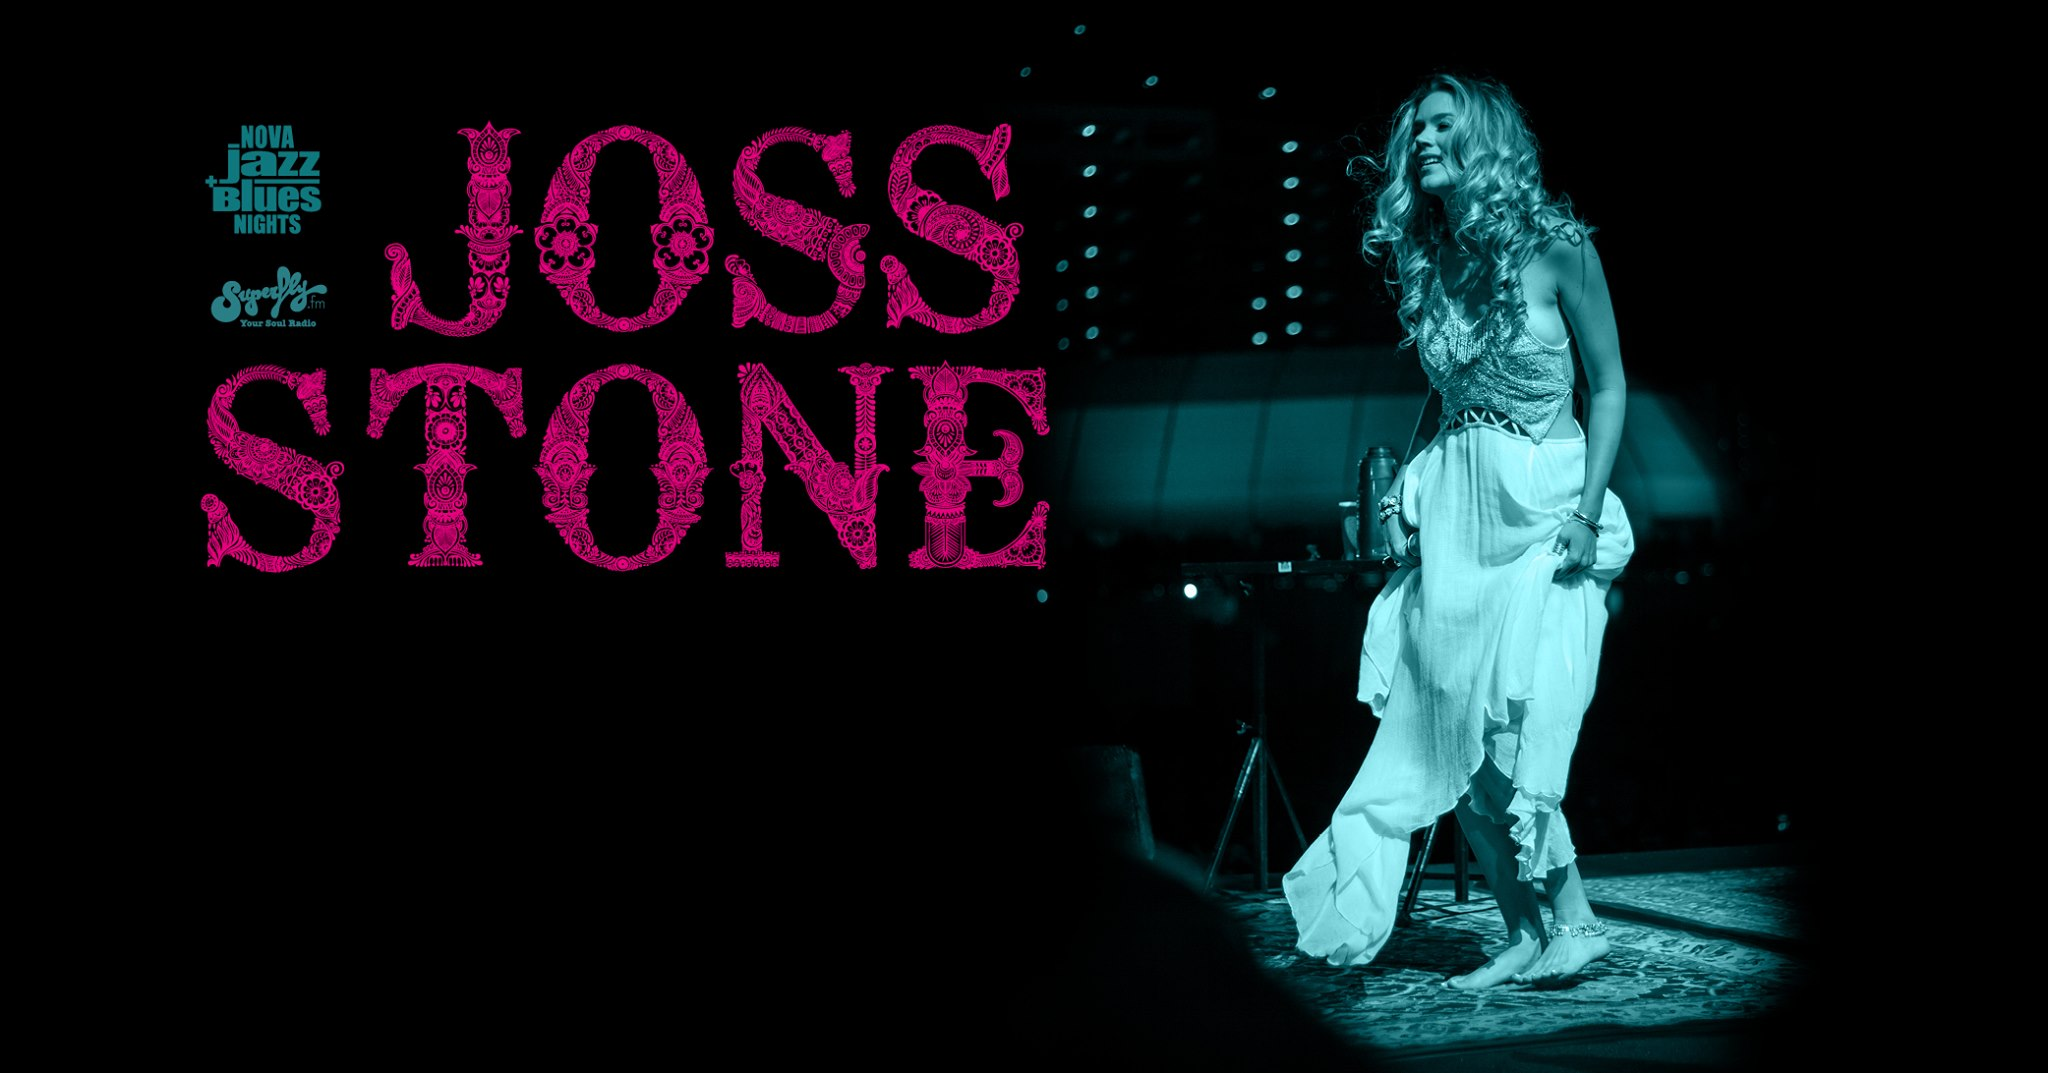 Joss Stone am 26. August 2020 @ Arena Wien - Open Air.